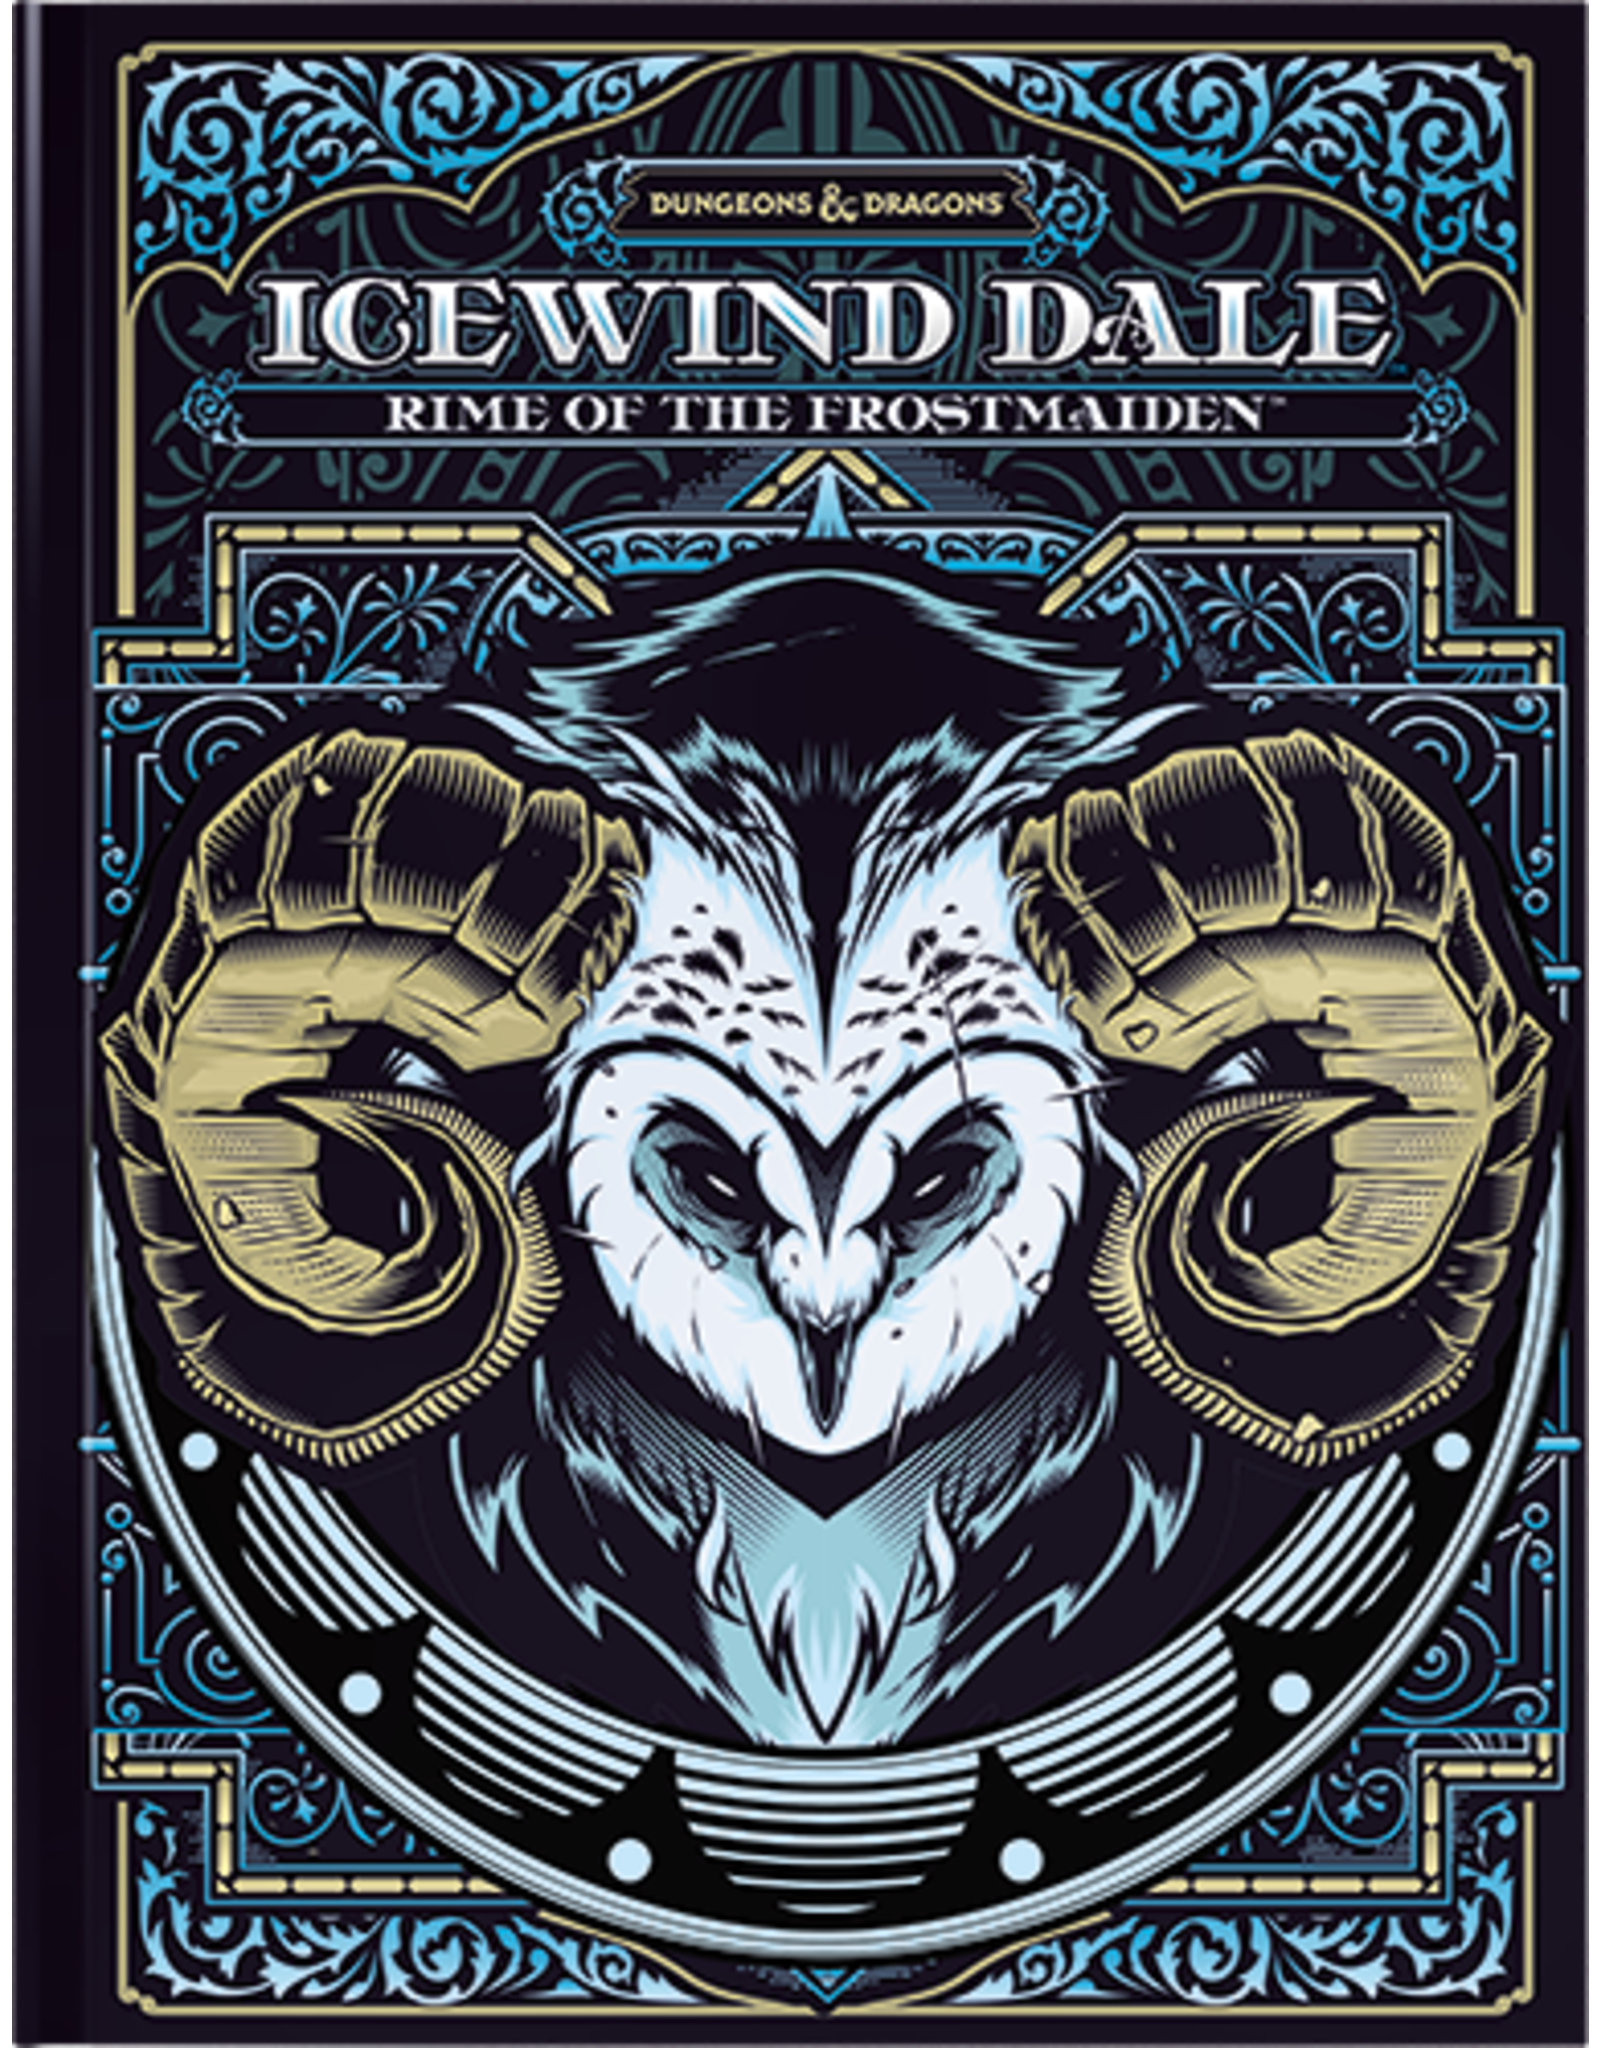 Wizards of the Coast D&D: Icewind Dale - Rise of the Frostmaiden Alt. Cover